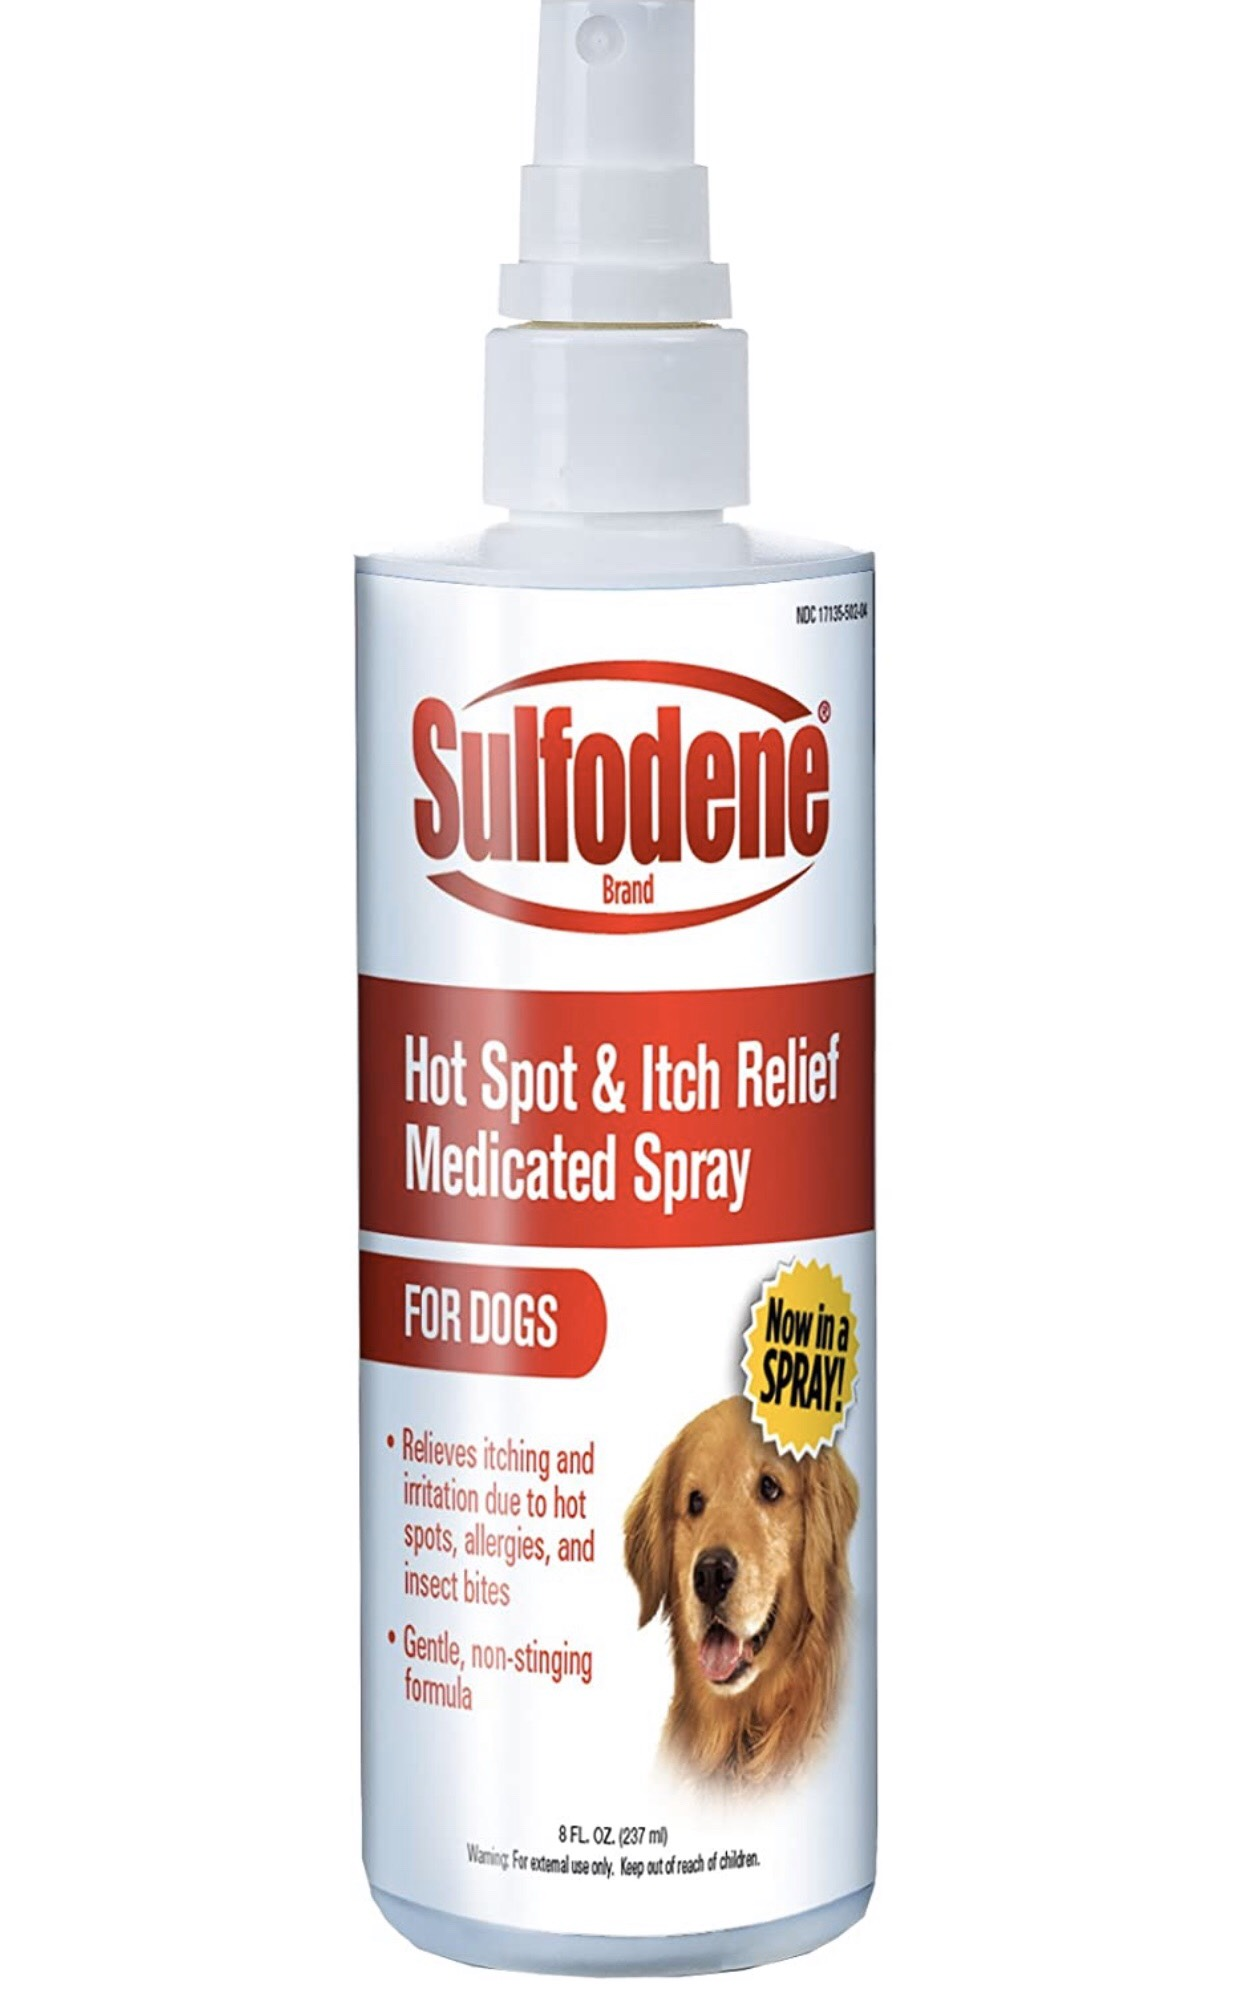 Sulfodene Hot Spot & Itch Relief Medicated Spray For Dogs 237ml